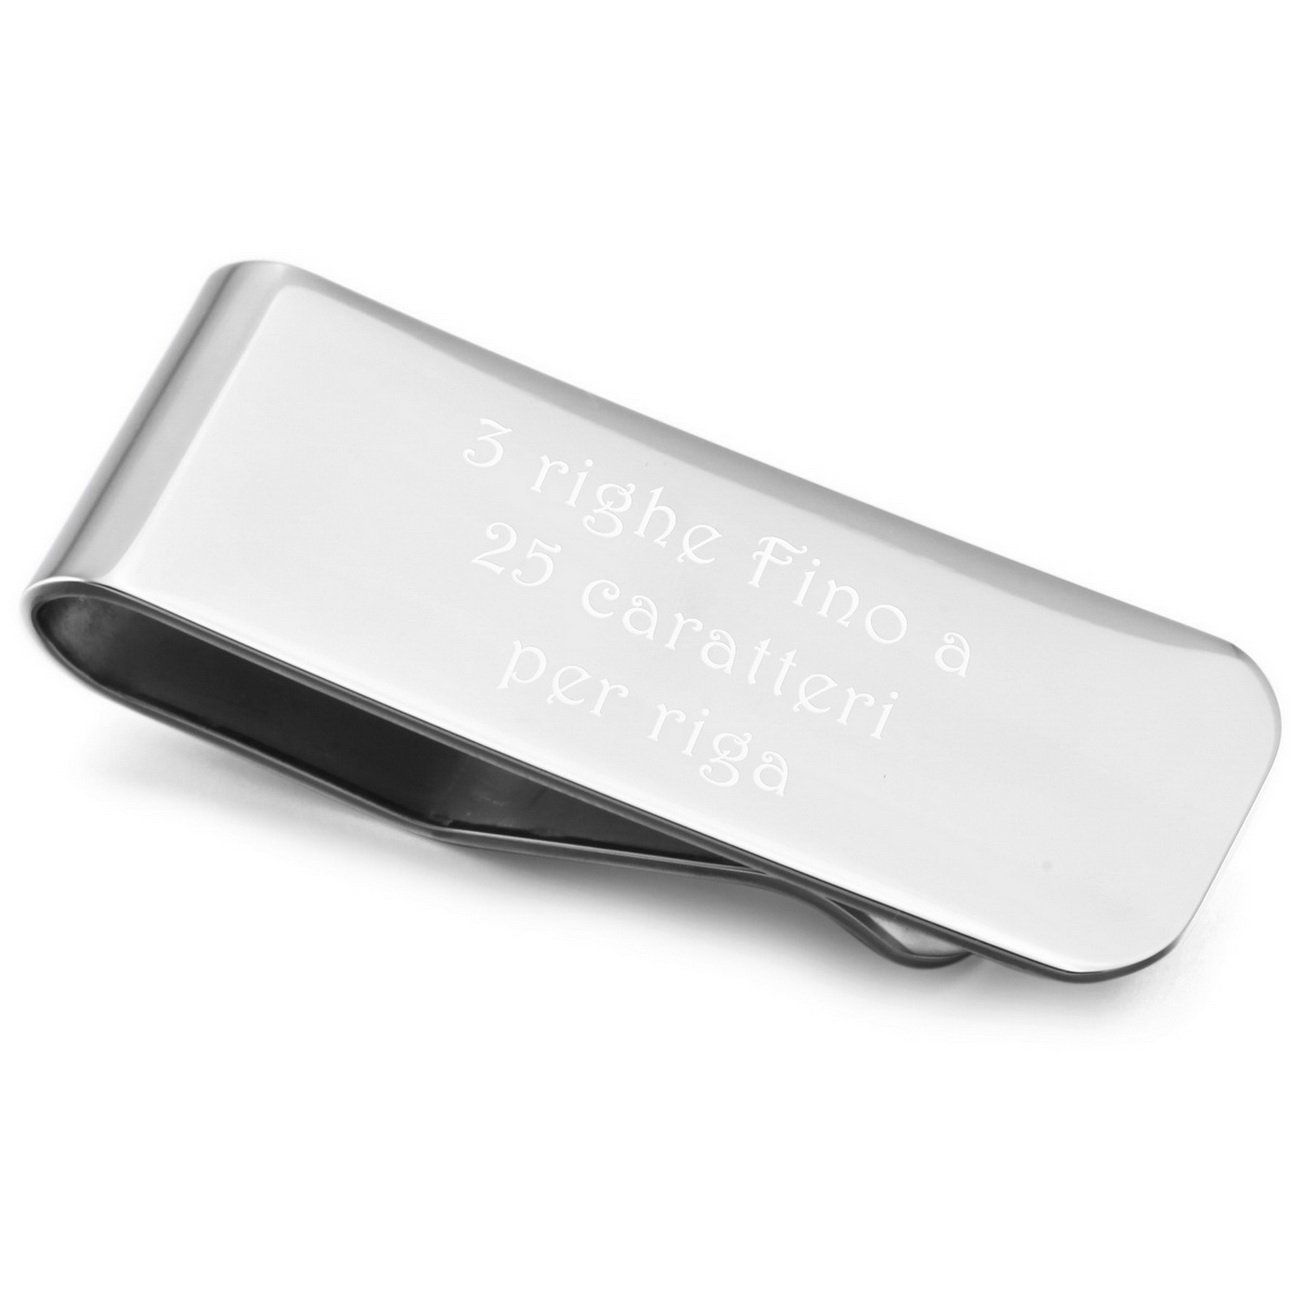 MeMeDIY Stainless Steel Money Clip - Personalizzato Incisione it3010054-2